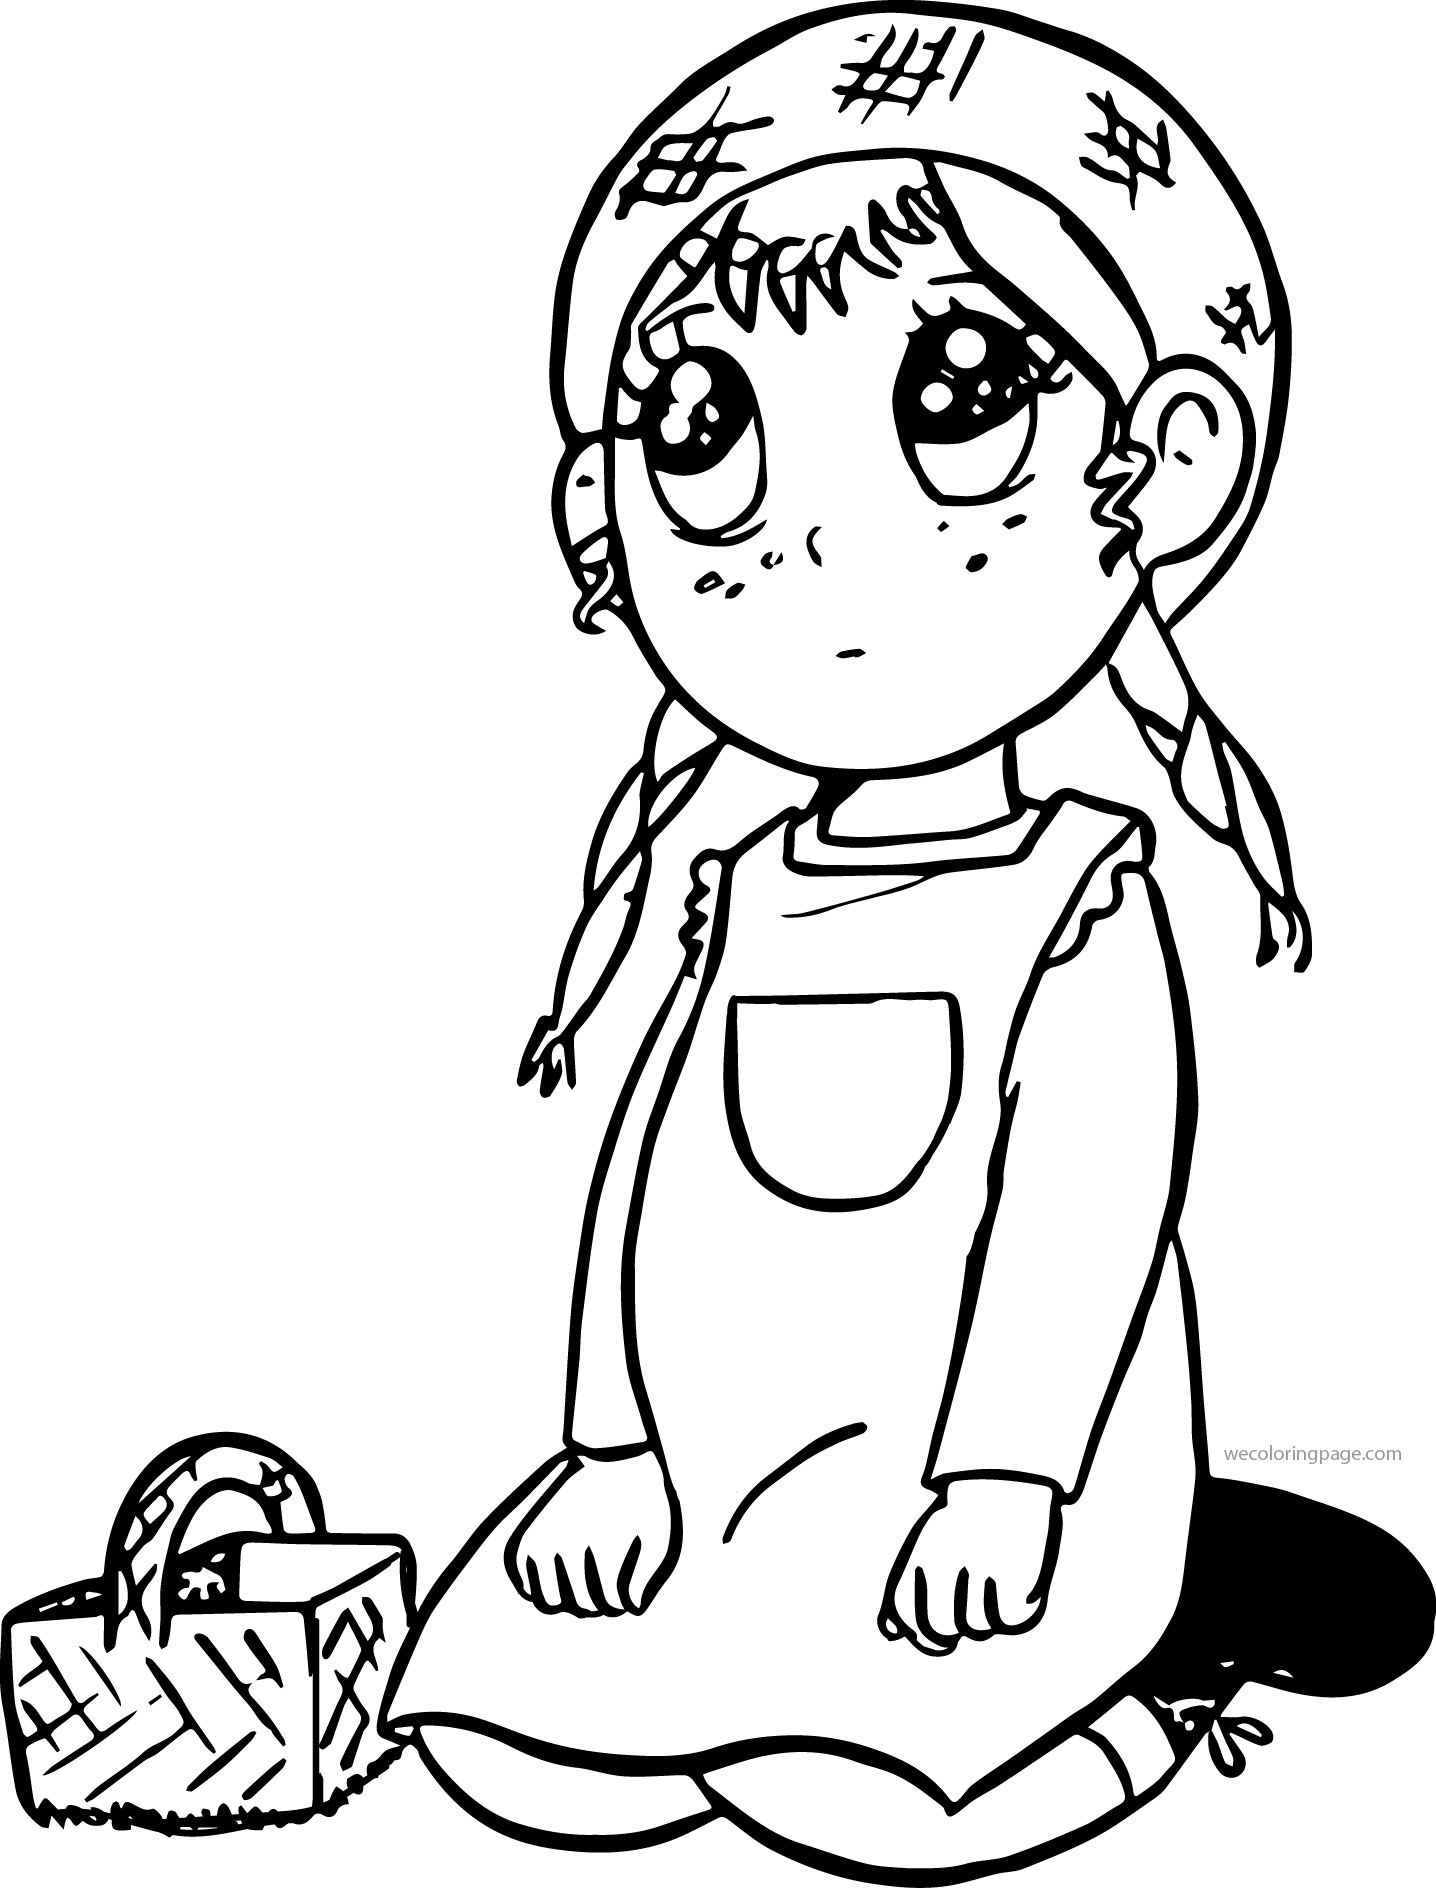 Anne Of Green Gables Coloring Pages   coloring   Pinterest   Green ...